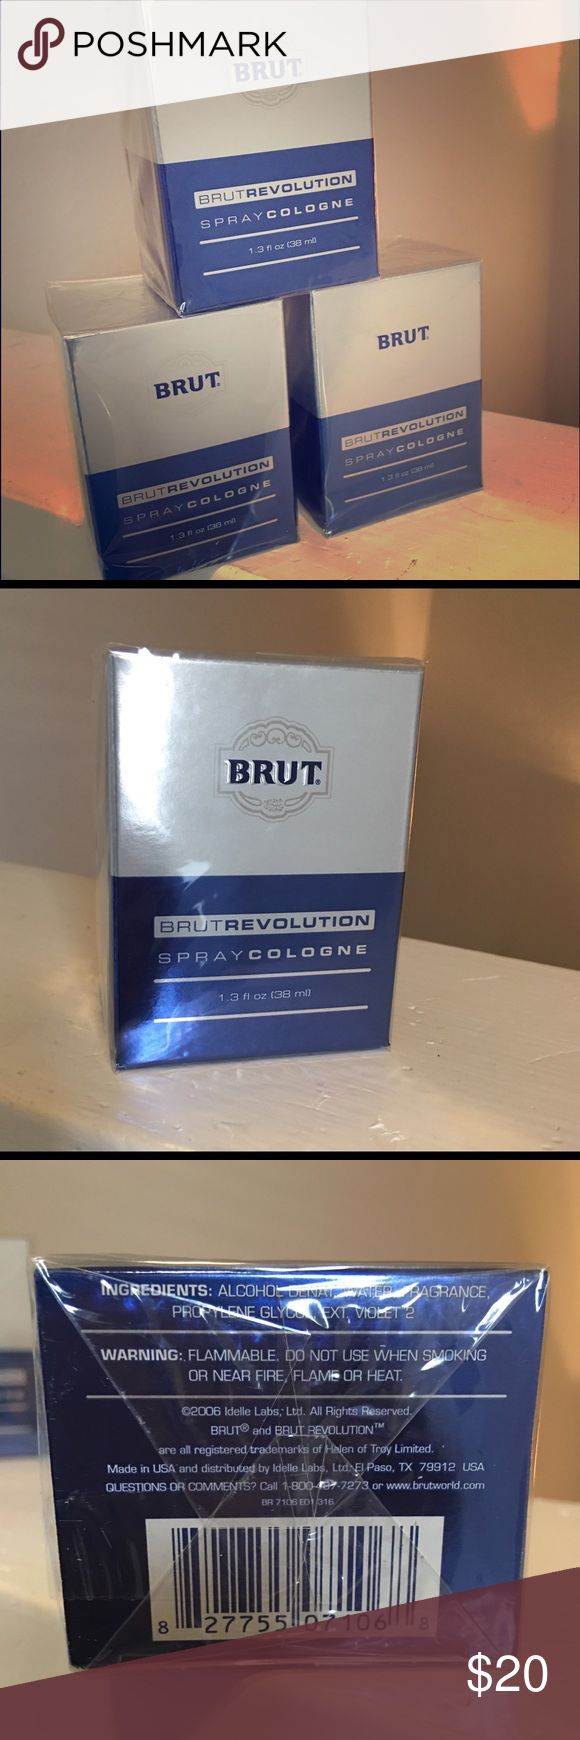 Lot of 3 BRUT REVOLUTION cologne! Valentines Special!  BRUT REVOLUTION EAU DE COLOGNE SPRAY LOT  FOR MEN 1.3 oz x 3! Brut Revolution was launched in 2006 as a fresh woody – aquatic fragrance made of pear, green and marine notes, black pepper, patchouli, musk and moss. 100% AUTHENTICITY GUARANTEED !!! BRUT Accessories